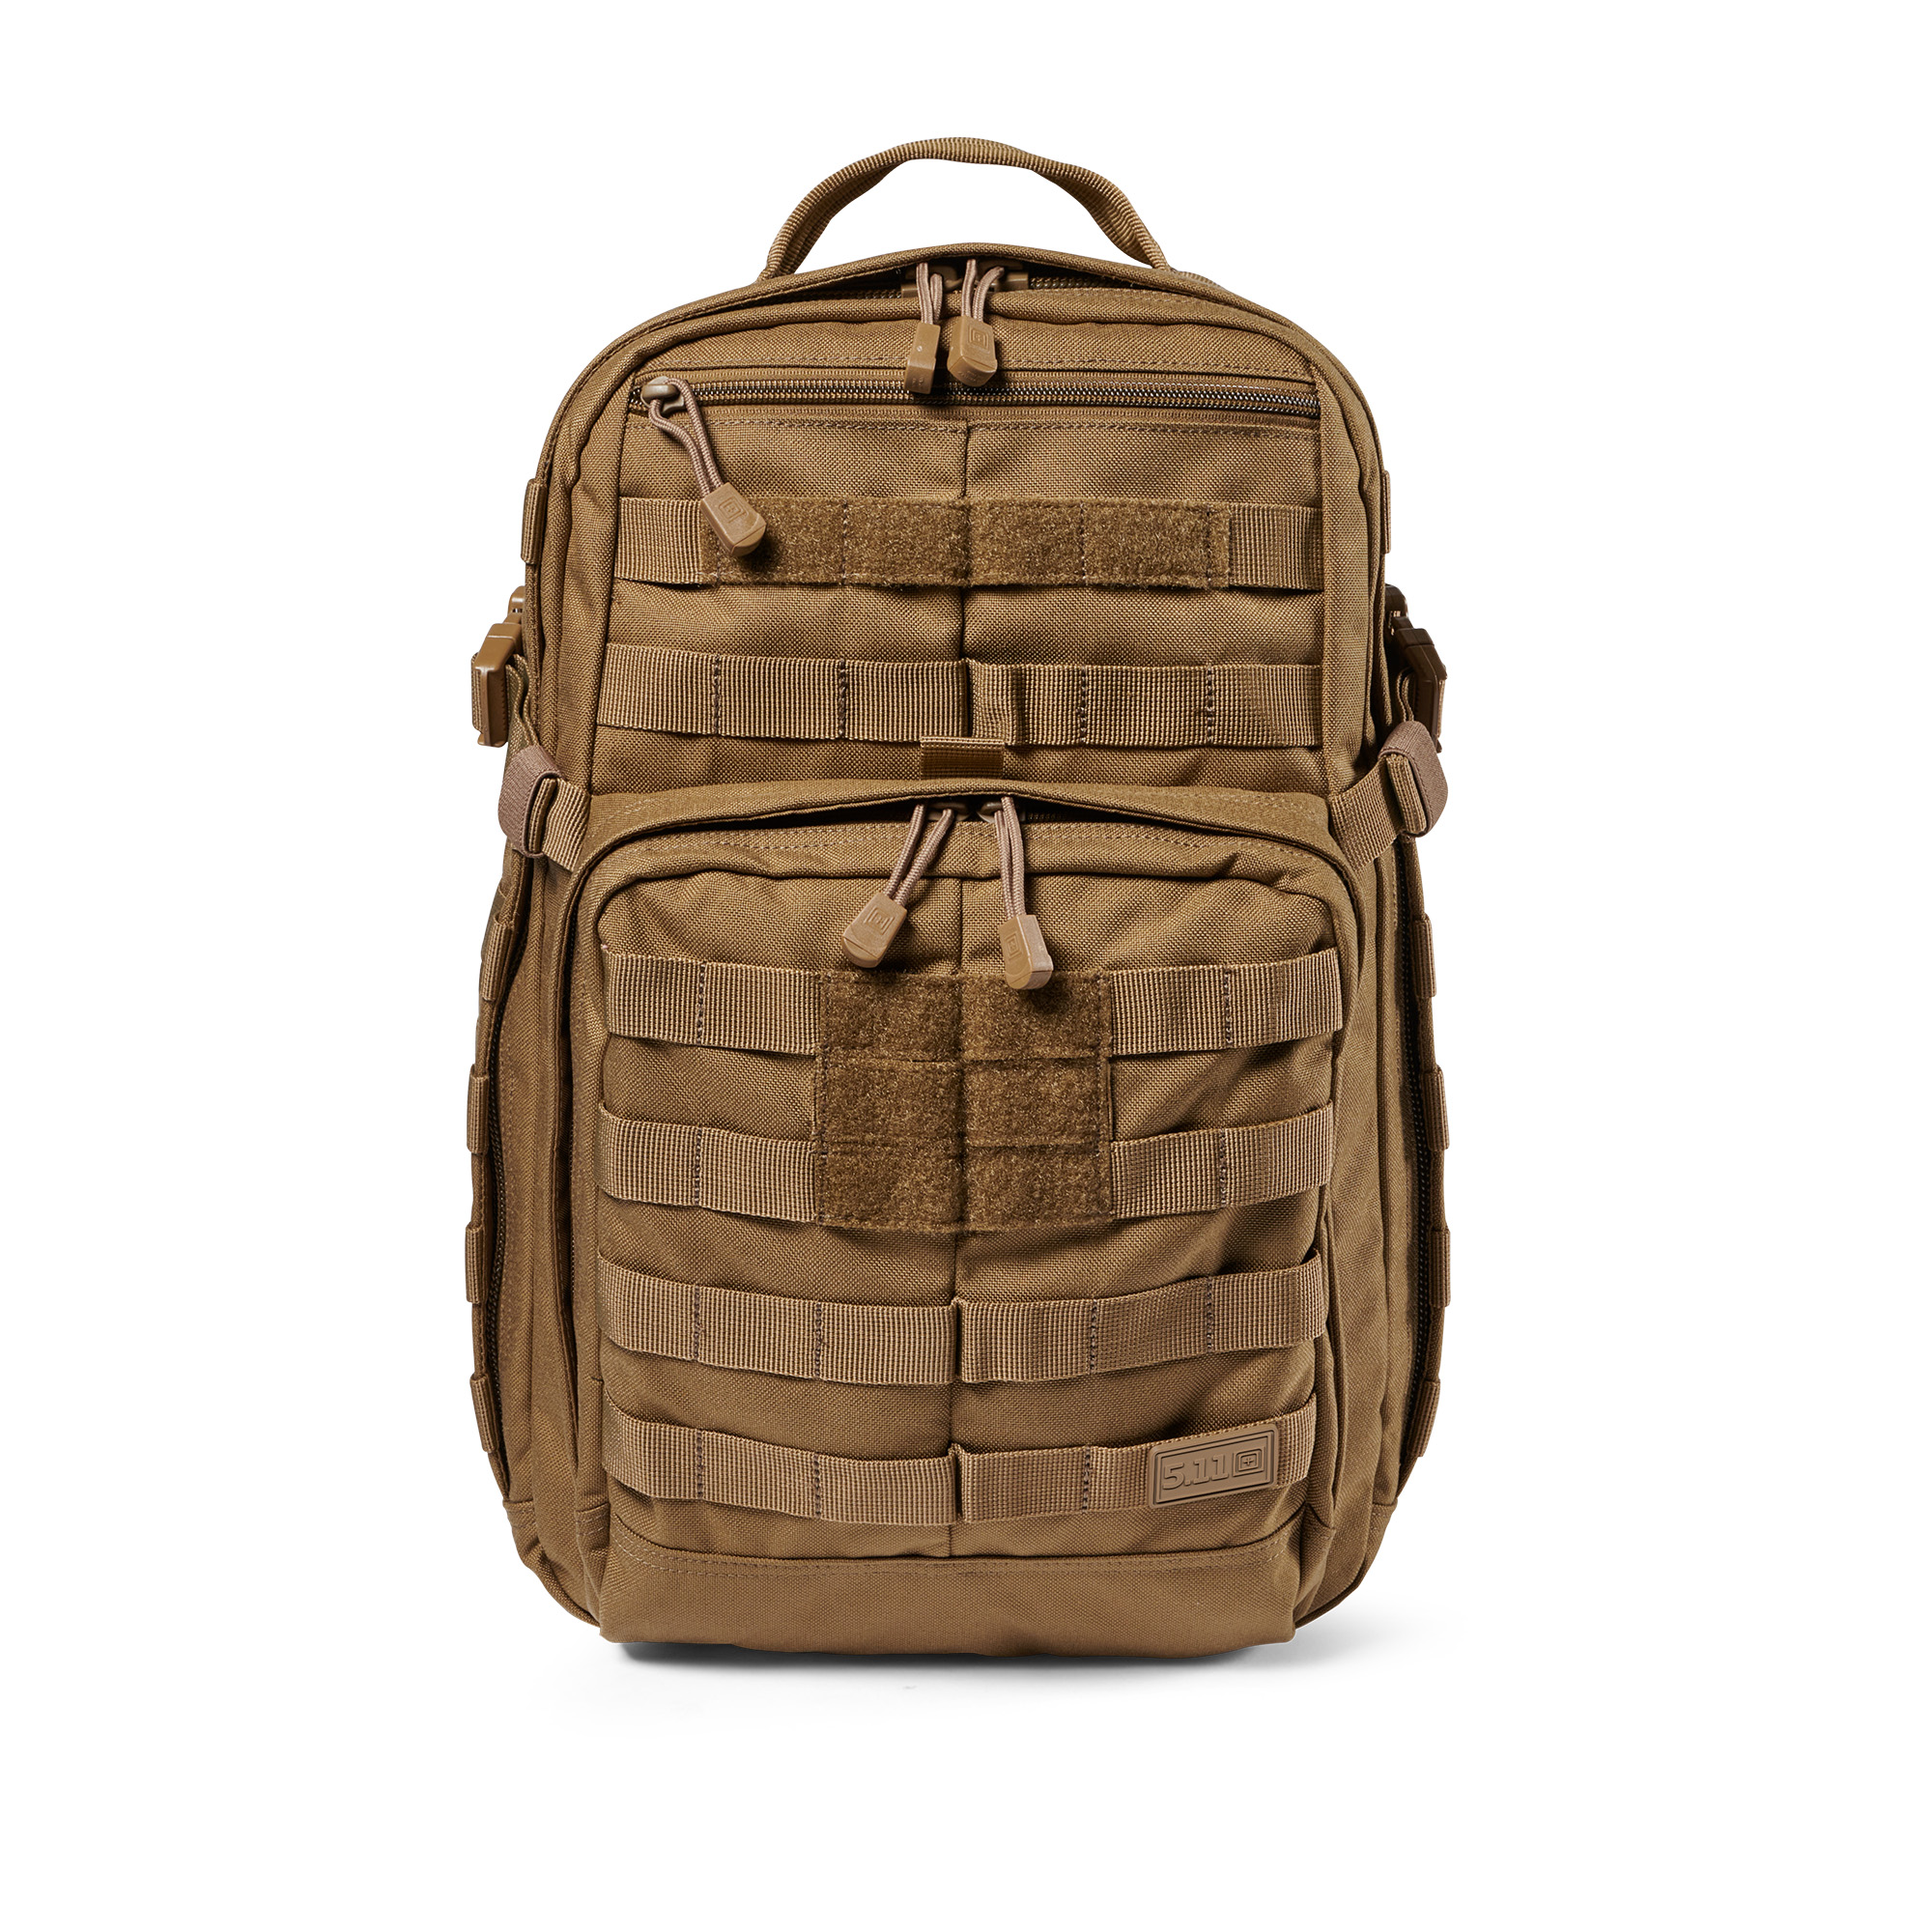 Balo 5.11 Tactical Rush 12 2.0 - Kangaroo